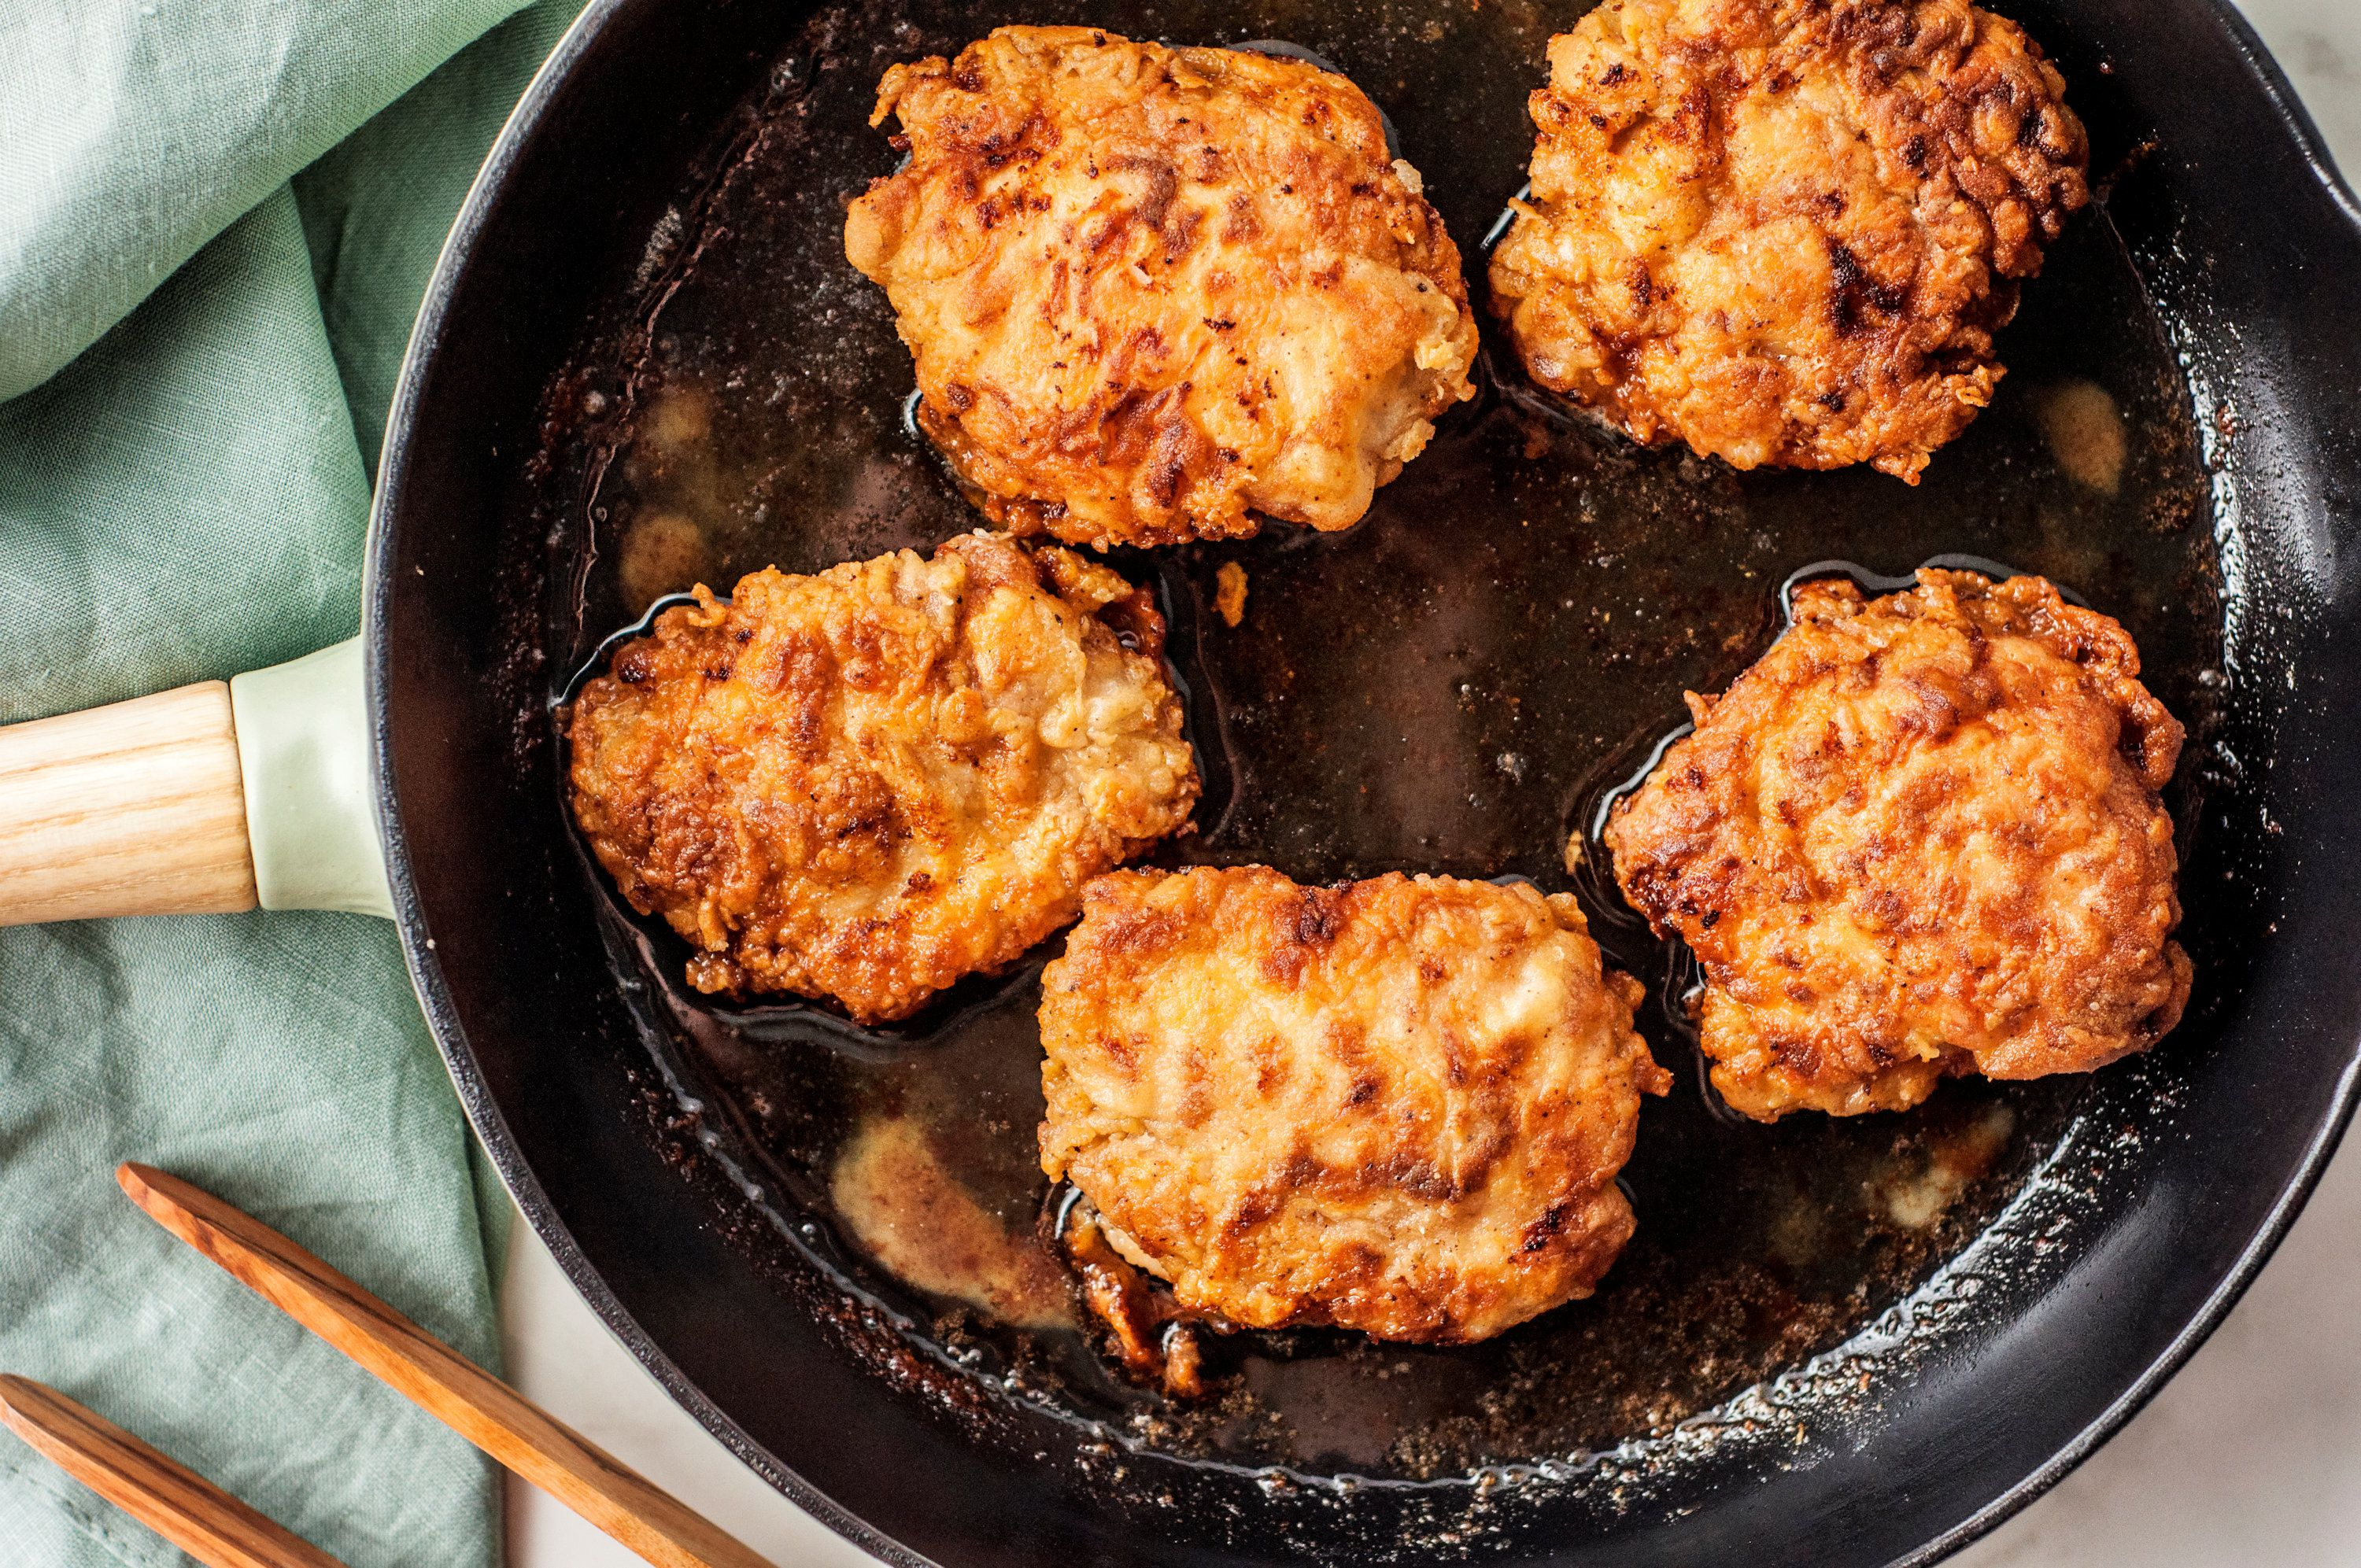 Chicken thighs being fried in oil